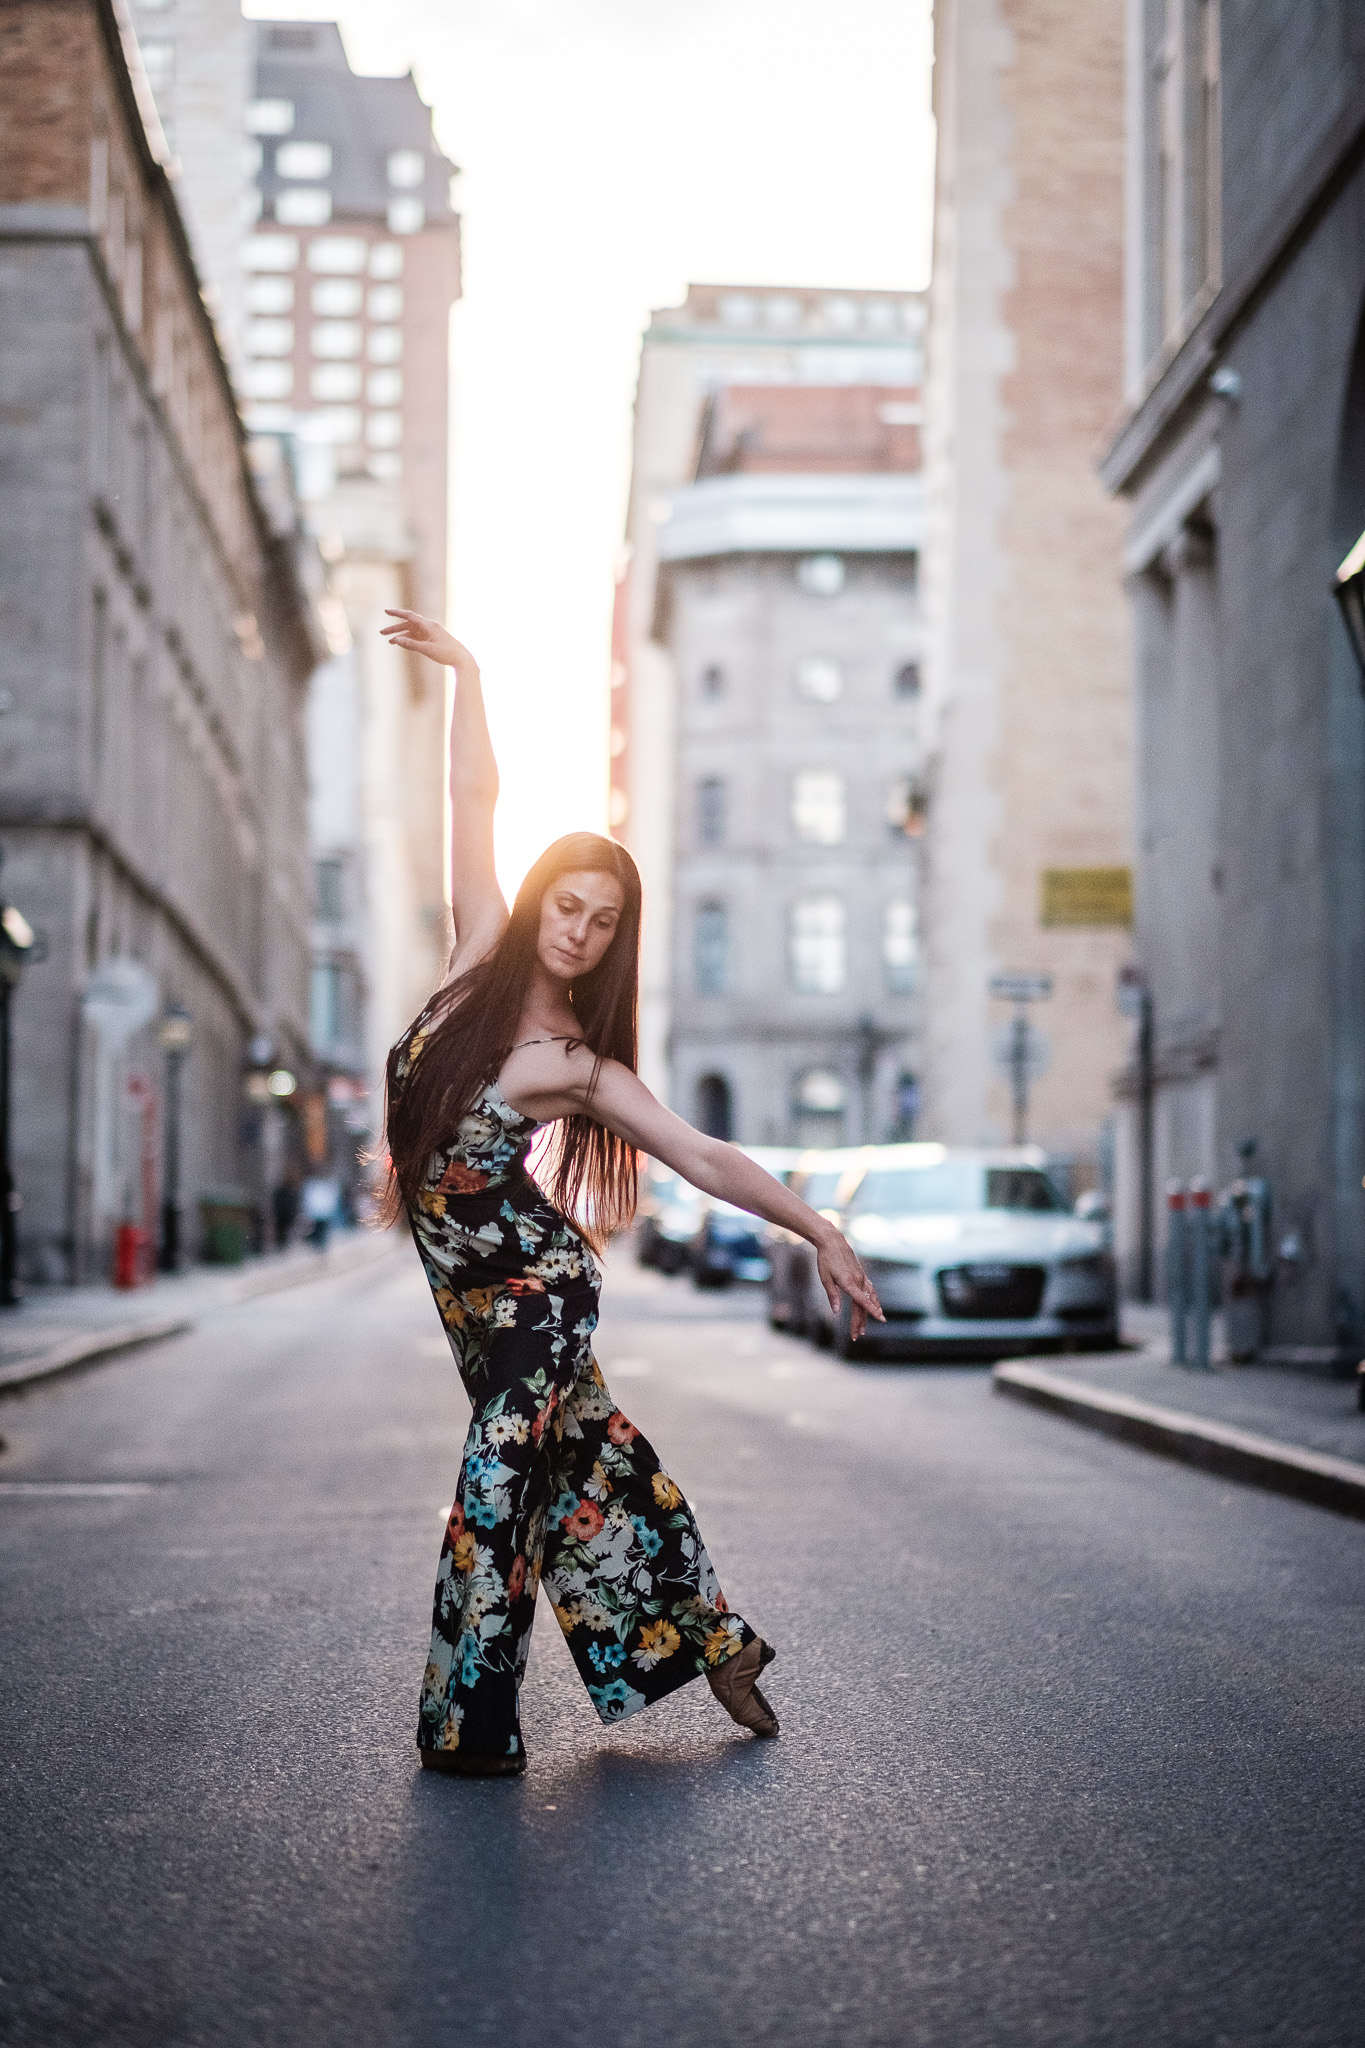 ballet dancer in middle of city street with sun setting behind her in montreal